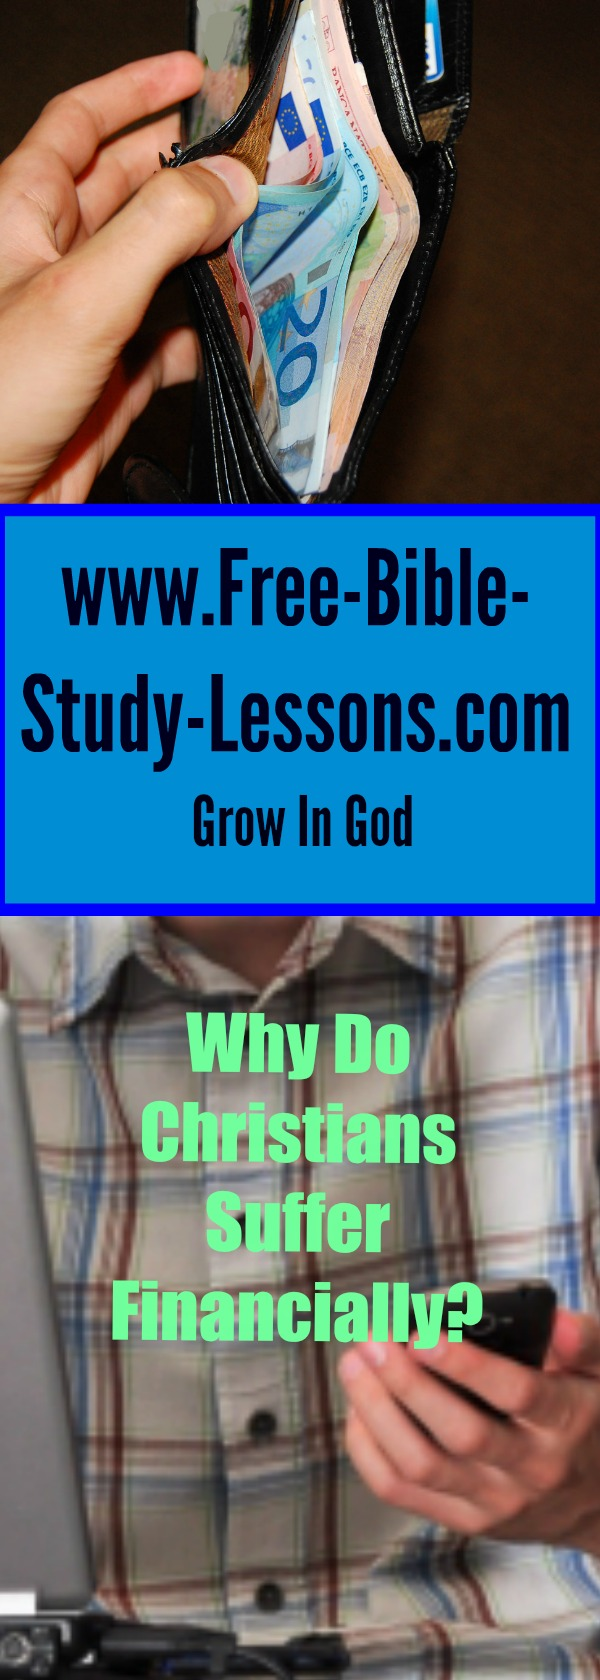 Why do some Christians struggle financially when God is the Source of all provision?